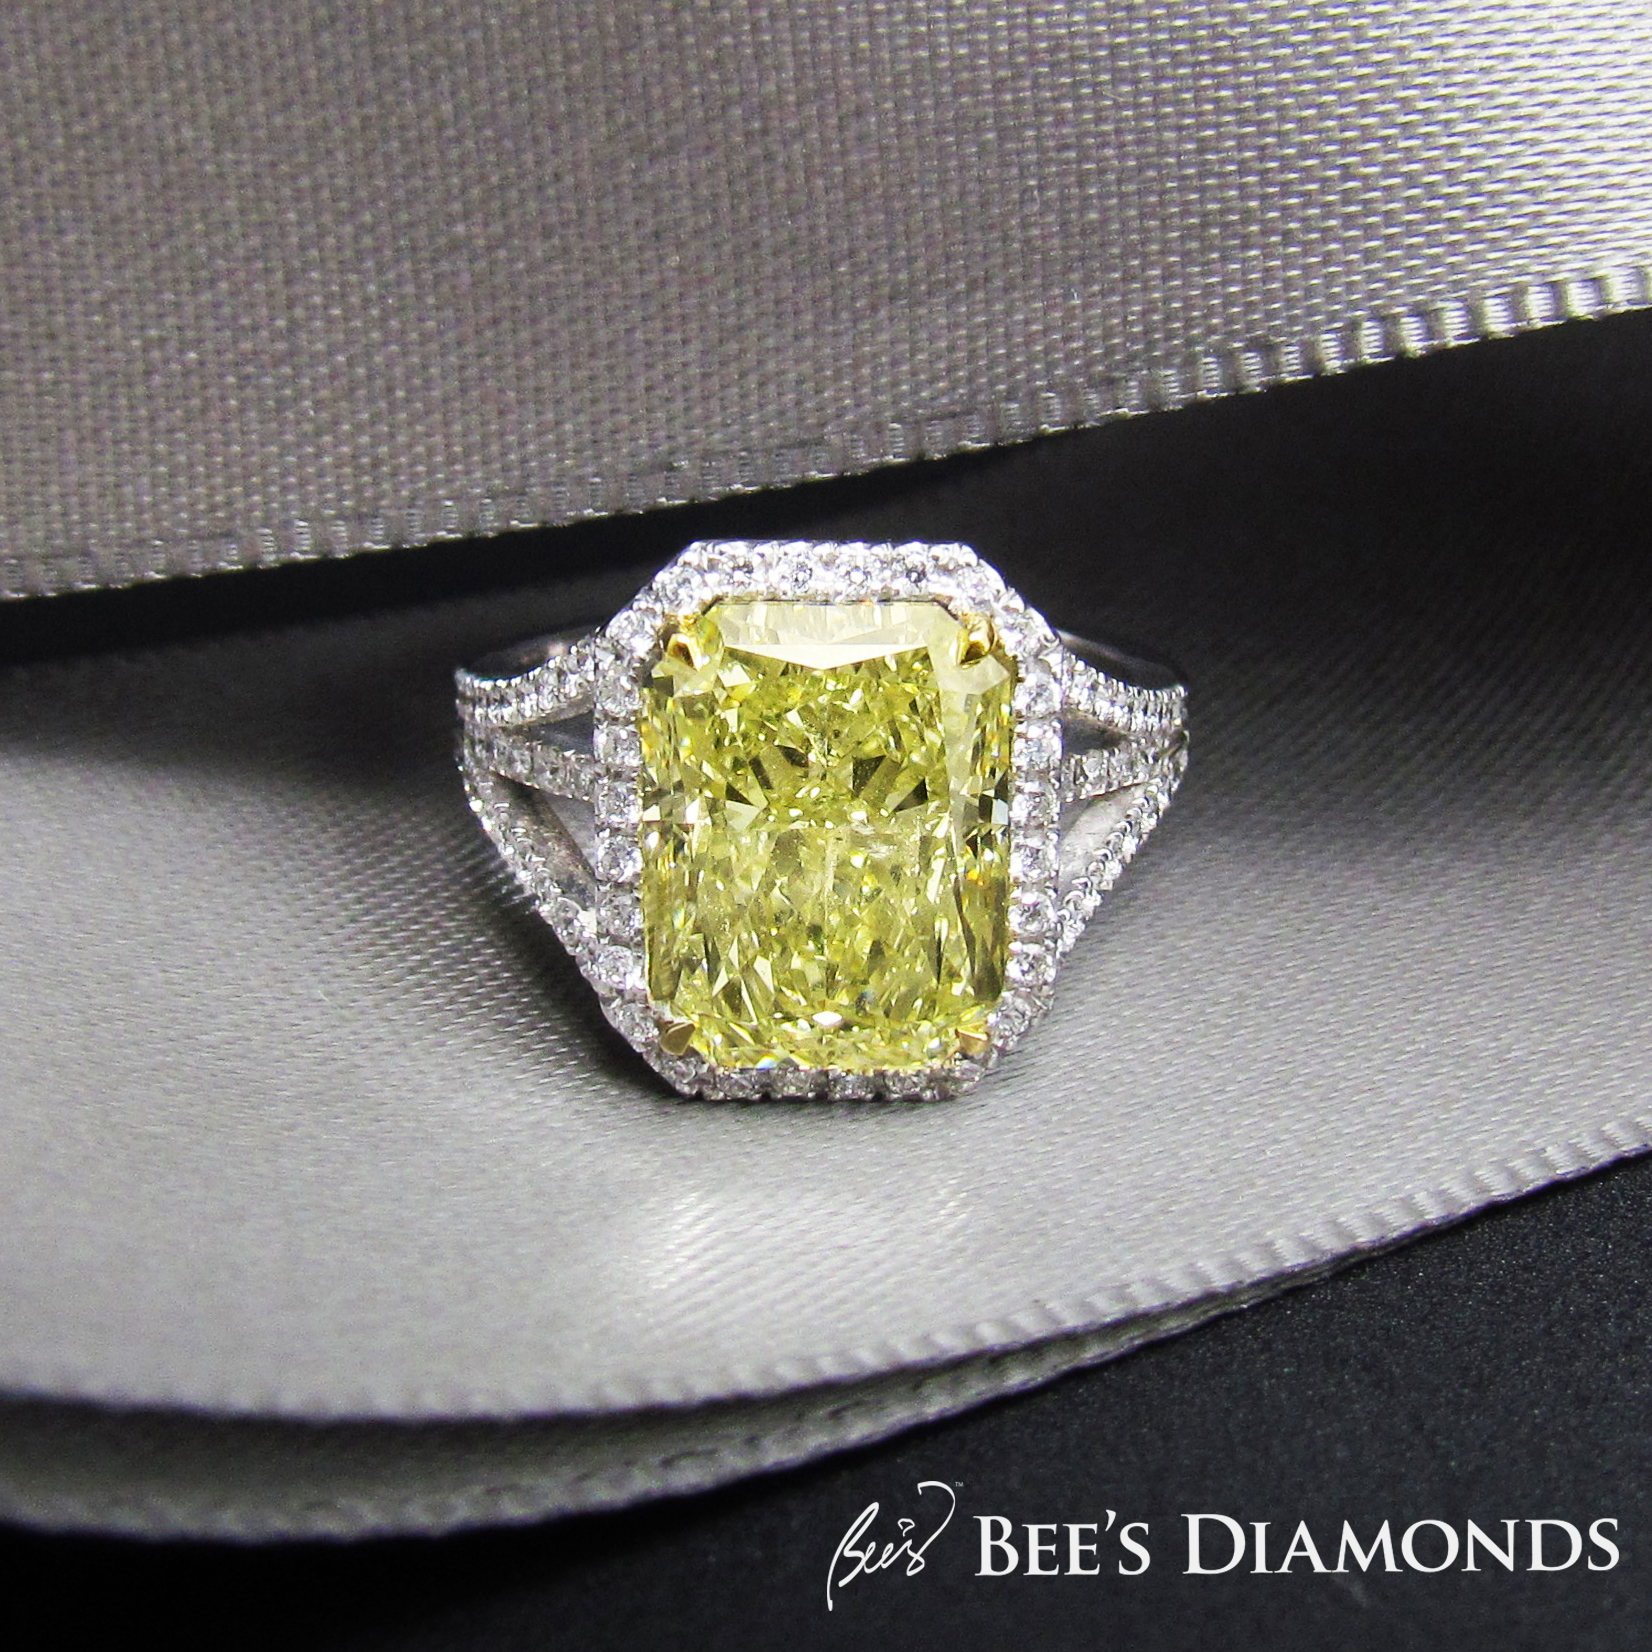 Large radiant cut fancy yellow diamond ring with GIA certificate